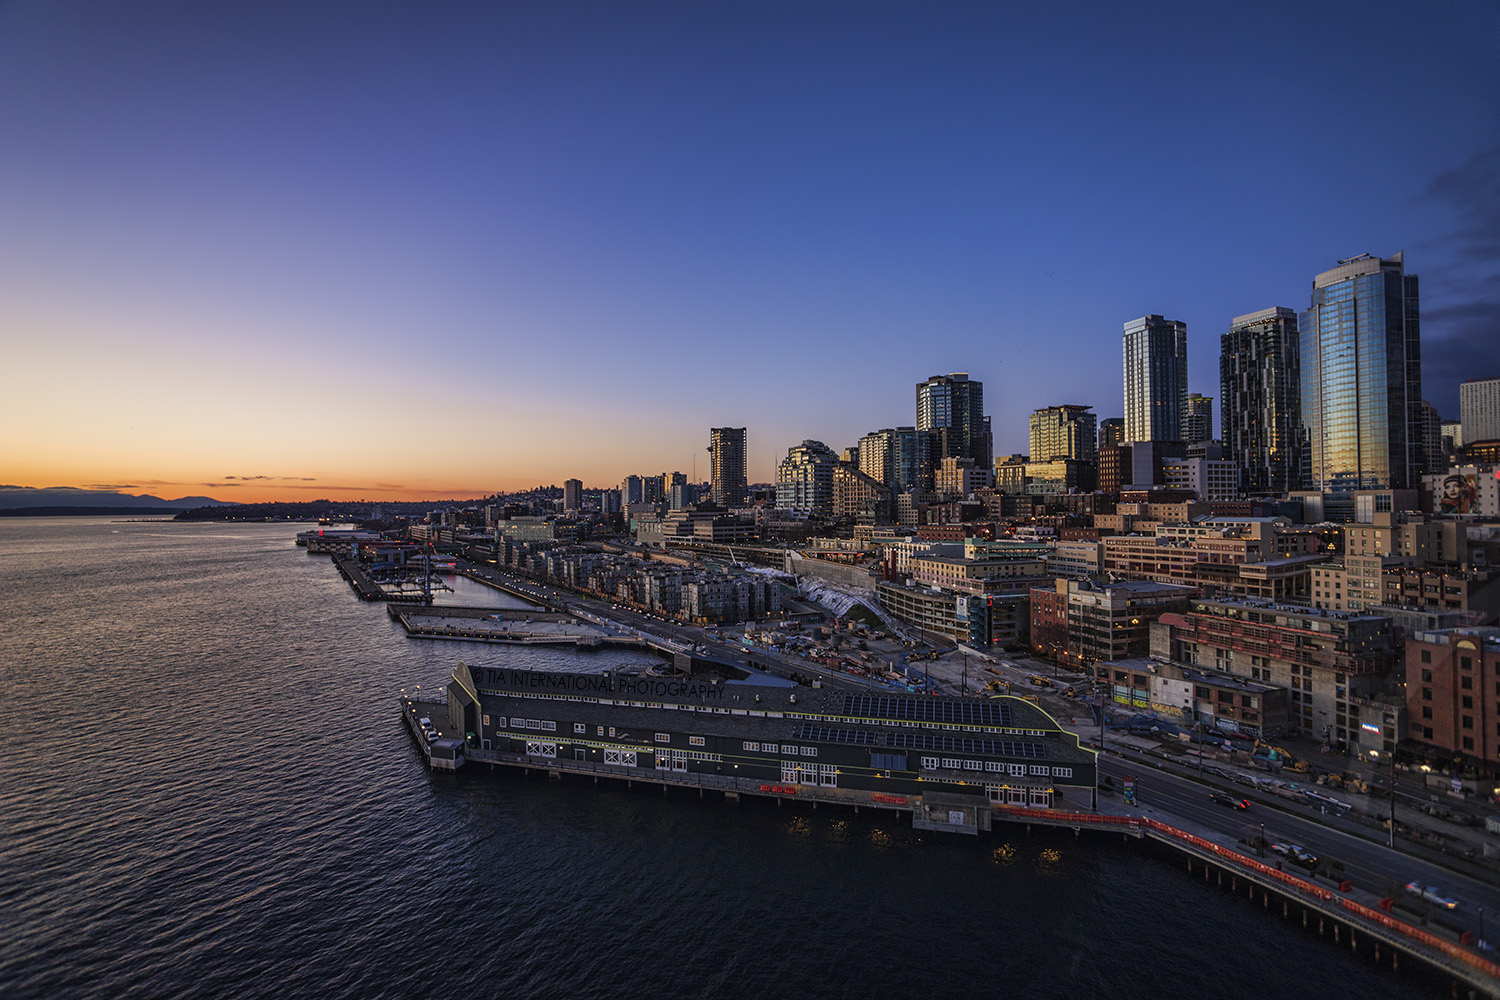 Downtown Seattle & Waterfront from the Great Wheel at sunset. The Seattle Aquarium can be seen in the immediate foreground.